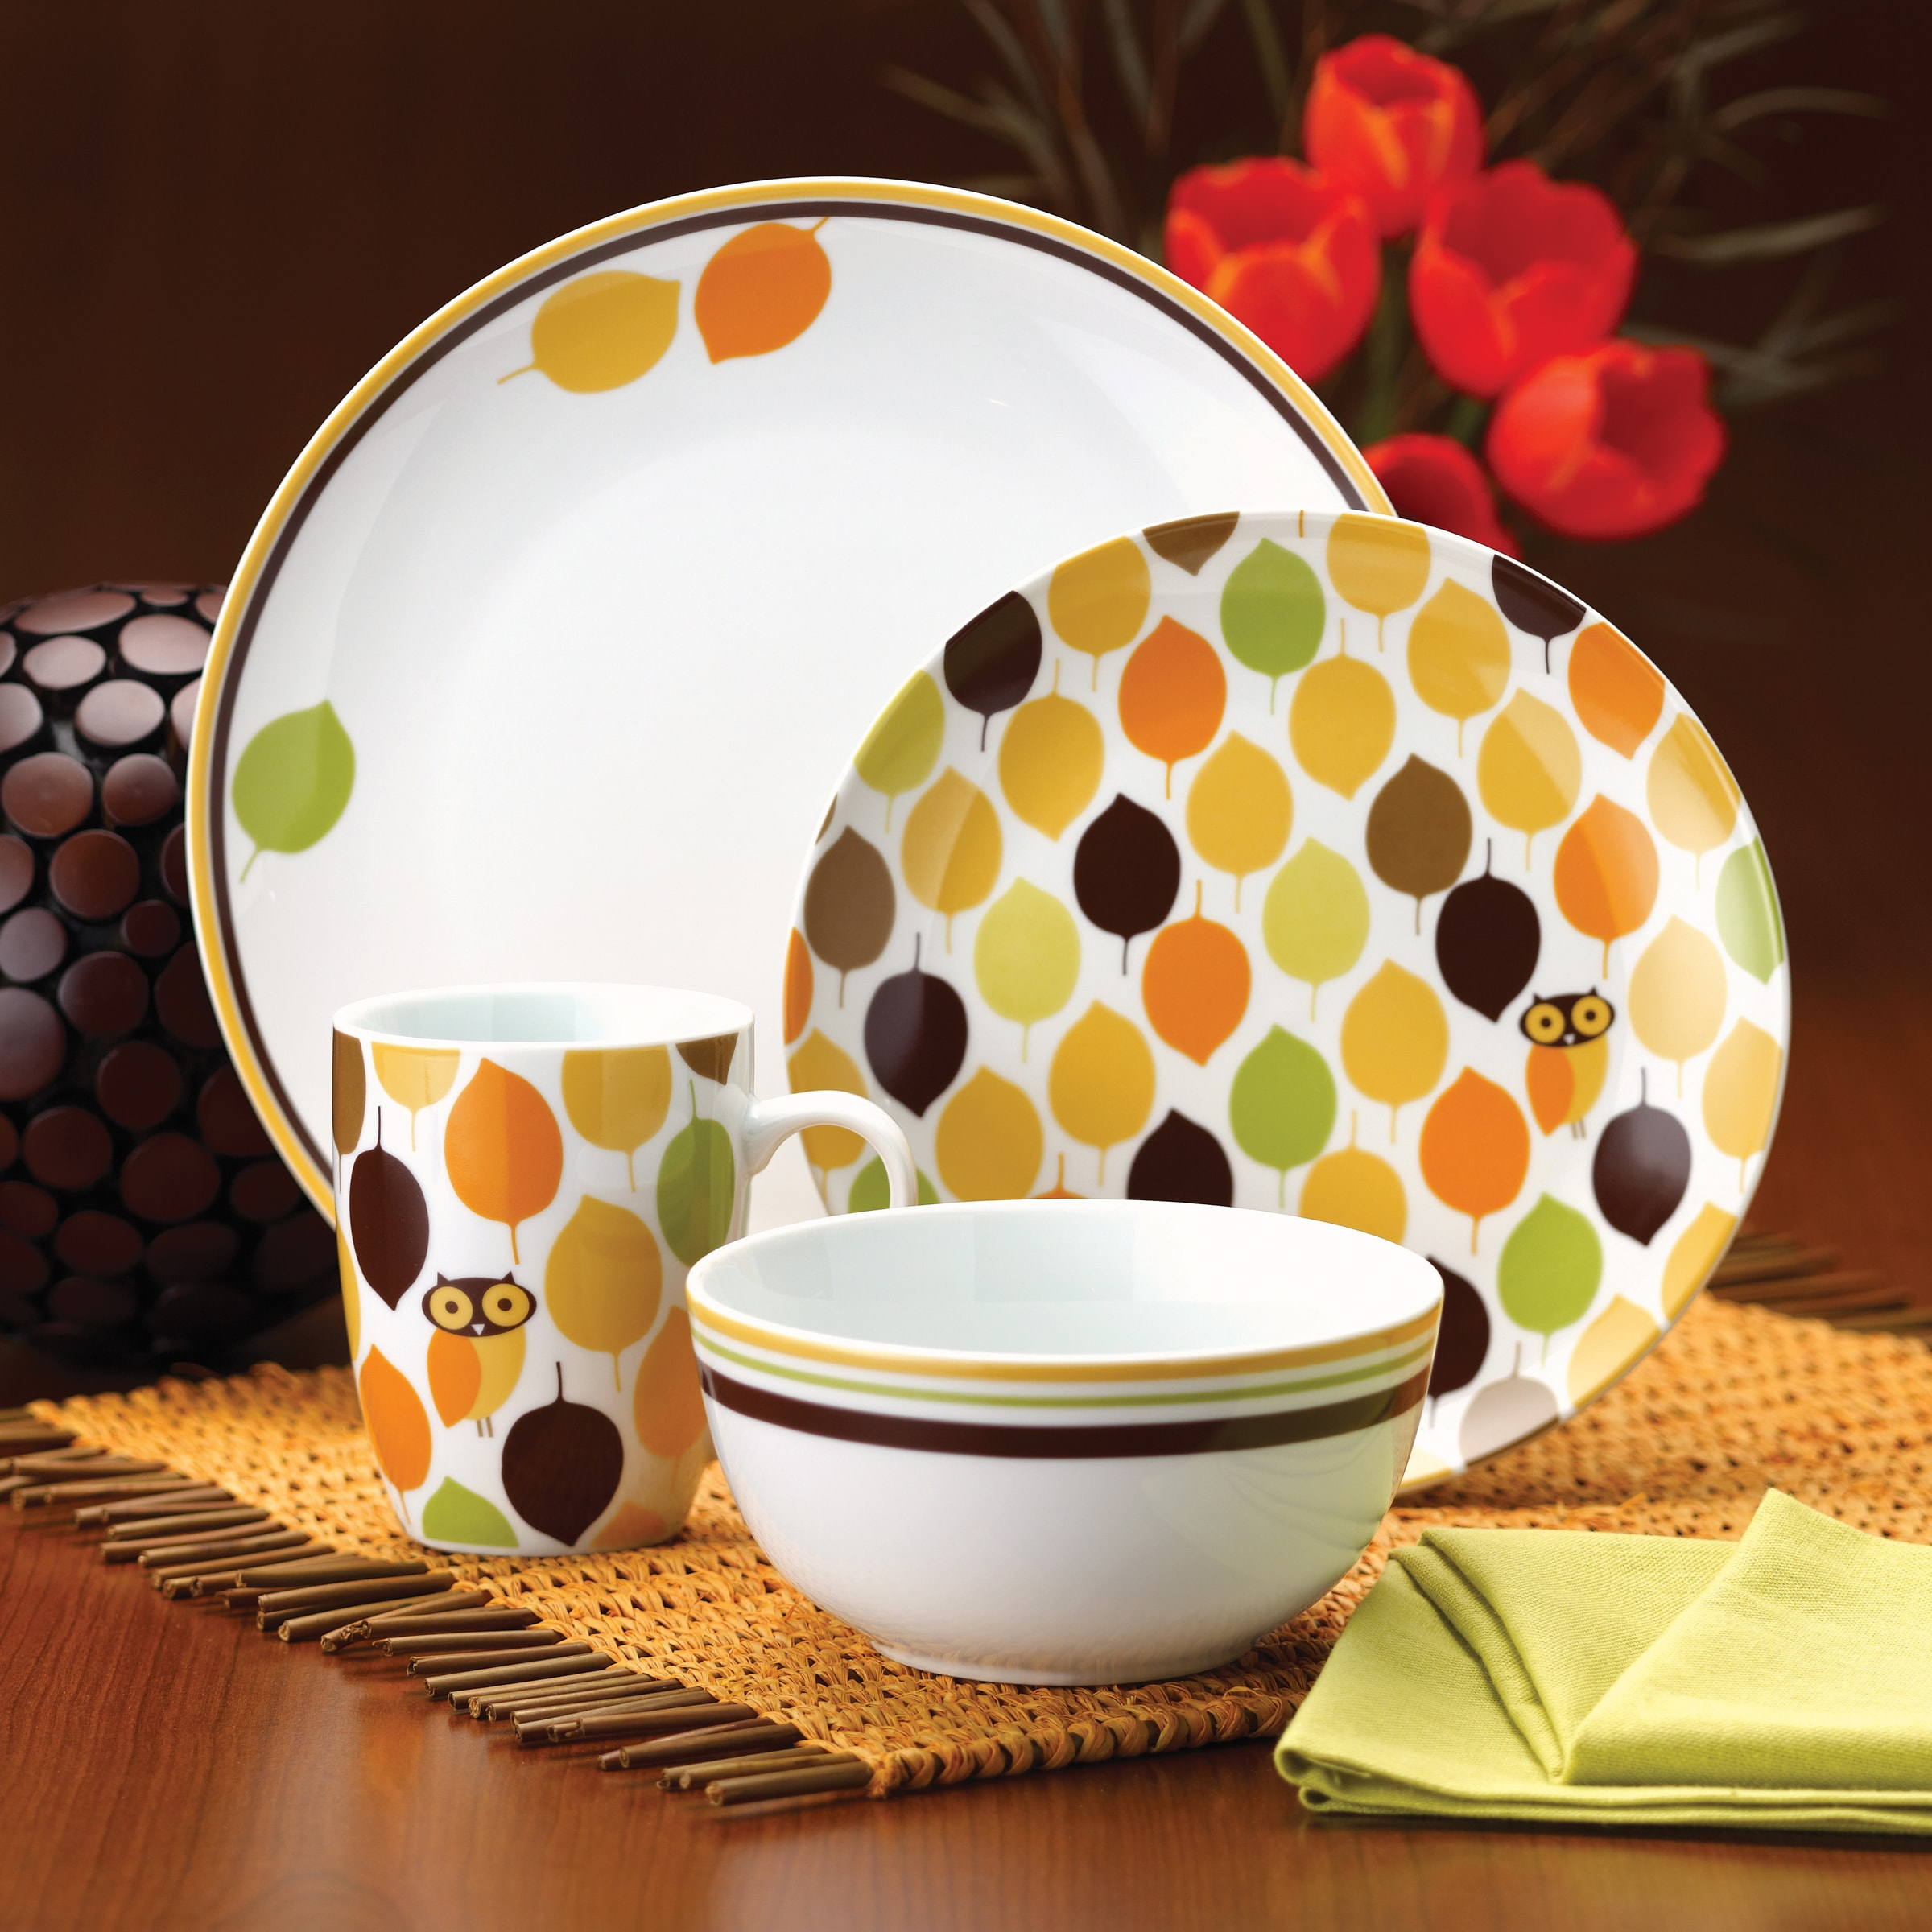 Rachael Ray Dinnerware Little Hoot 16-piece Porcelain Dinnerware Set - Free Shipping Today - Overstock - 13906651 & Rachael Ray Dinnerware Little Hoot 16-piece Porcelain Dinnerware Set ...